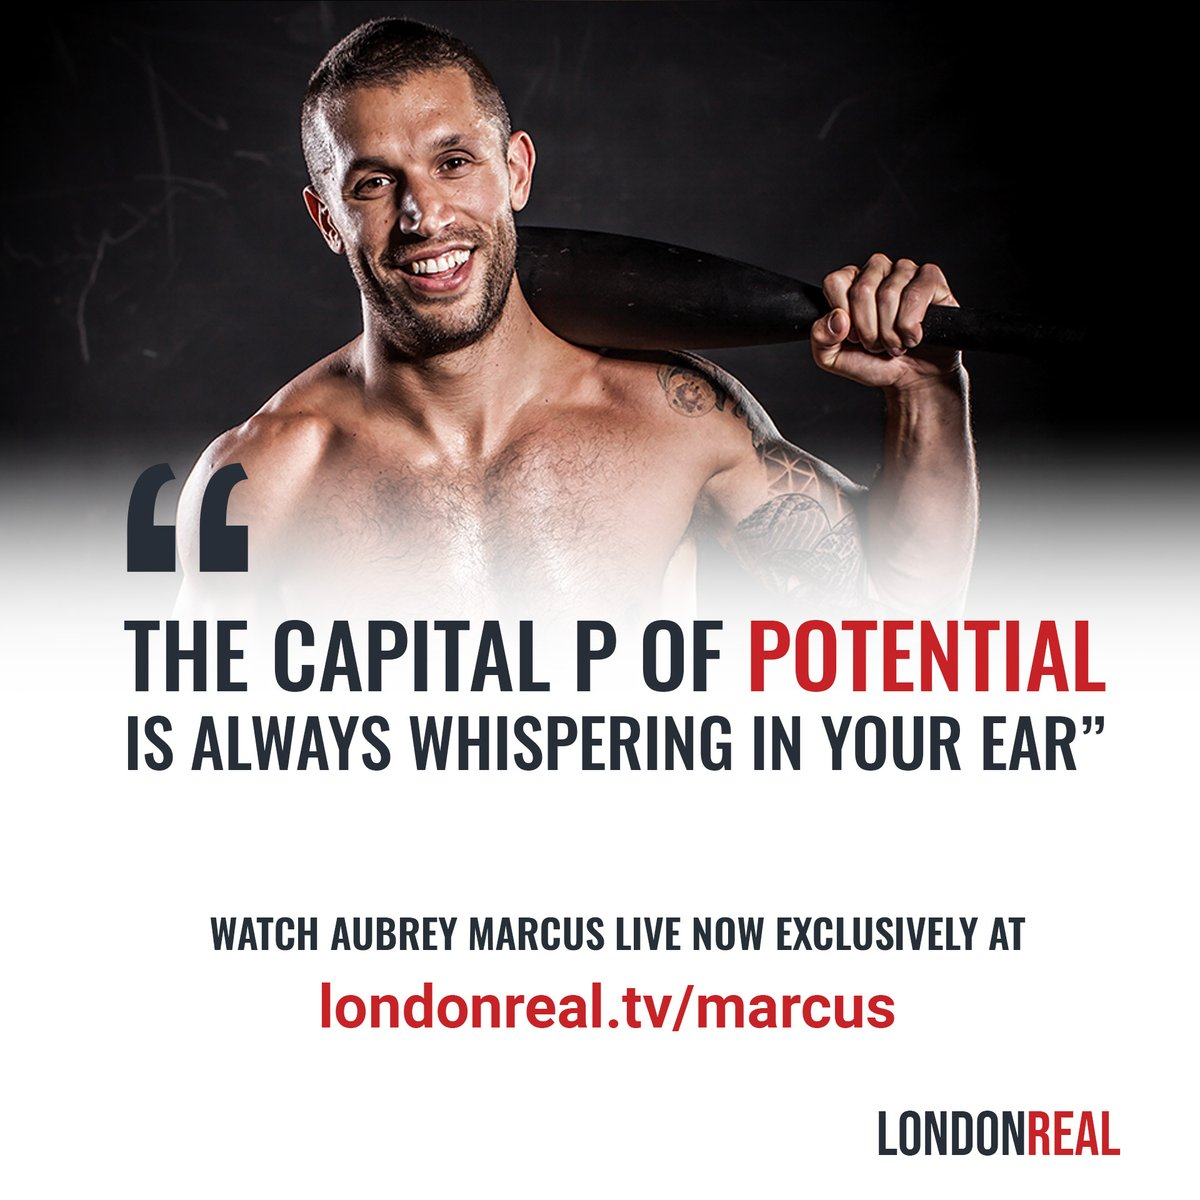 London Real On Twitter The Capital P Of Potential Is Always Whispering In Your Ear Aubrey Marcus What Are You Doing In Your Life To Achieve Your Potential Watch Our Live